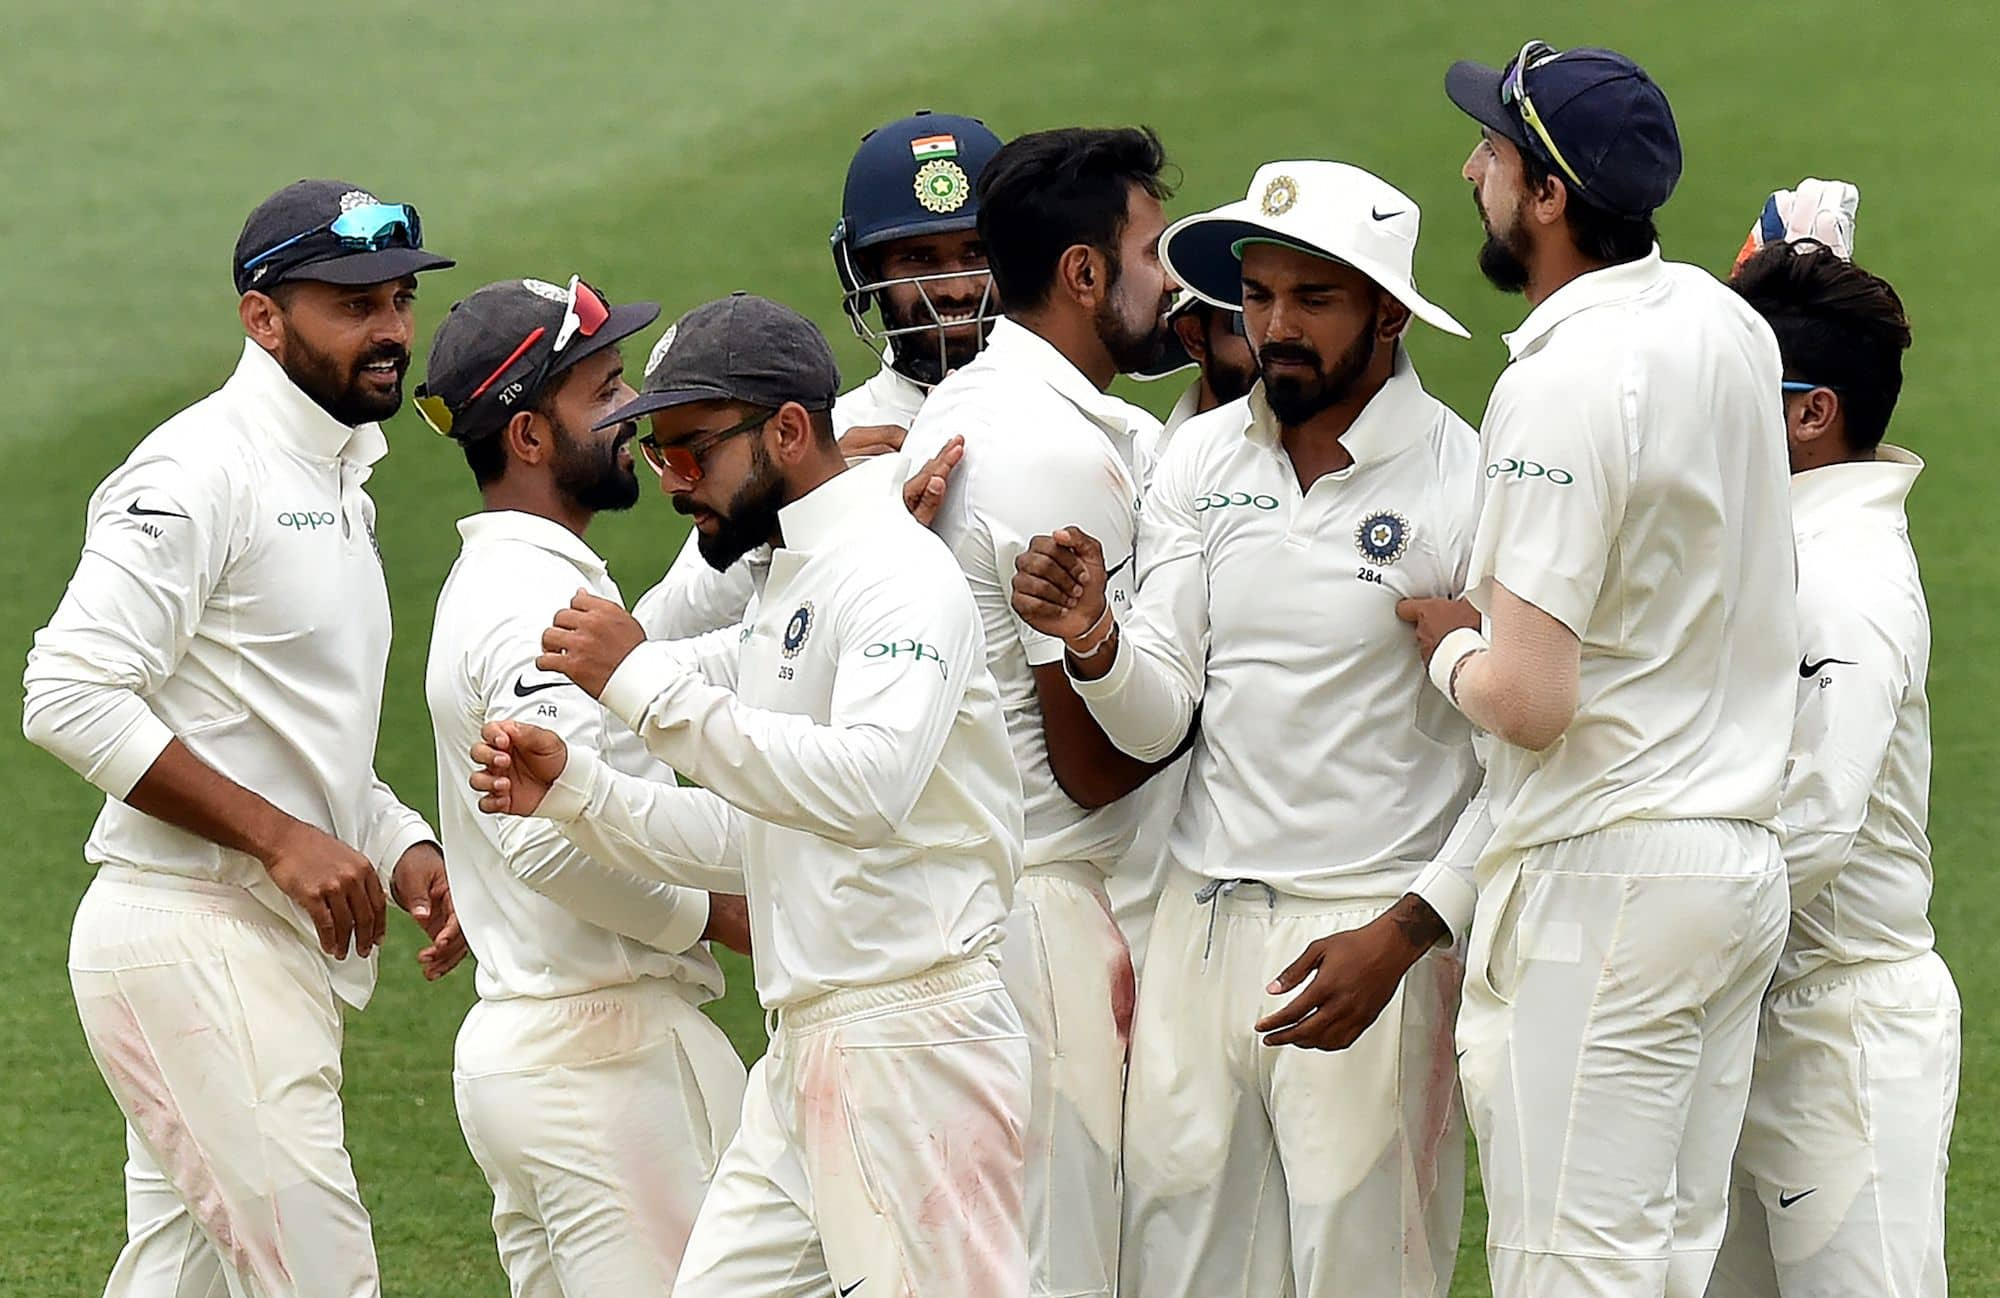 2nd Test: Virat Kohli's India can retain the Border-Gavaskar Trophy with victory in Perth